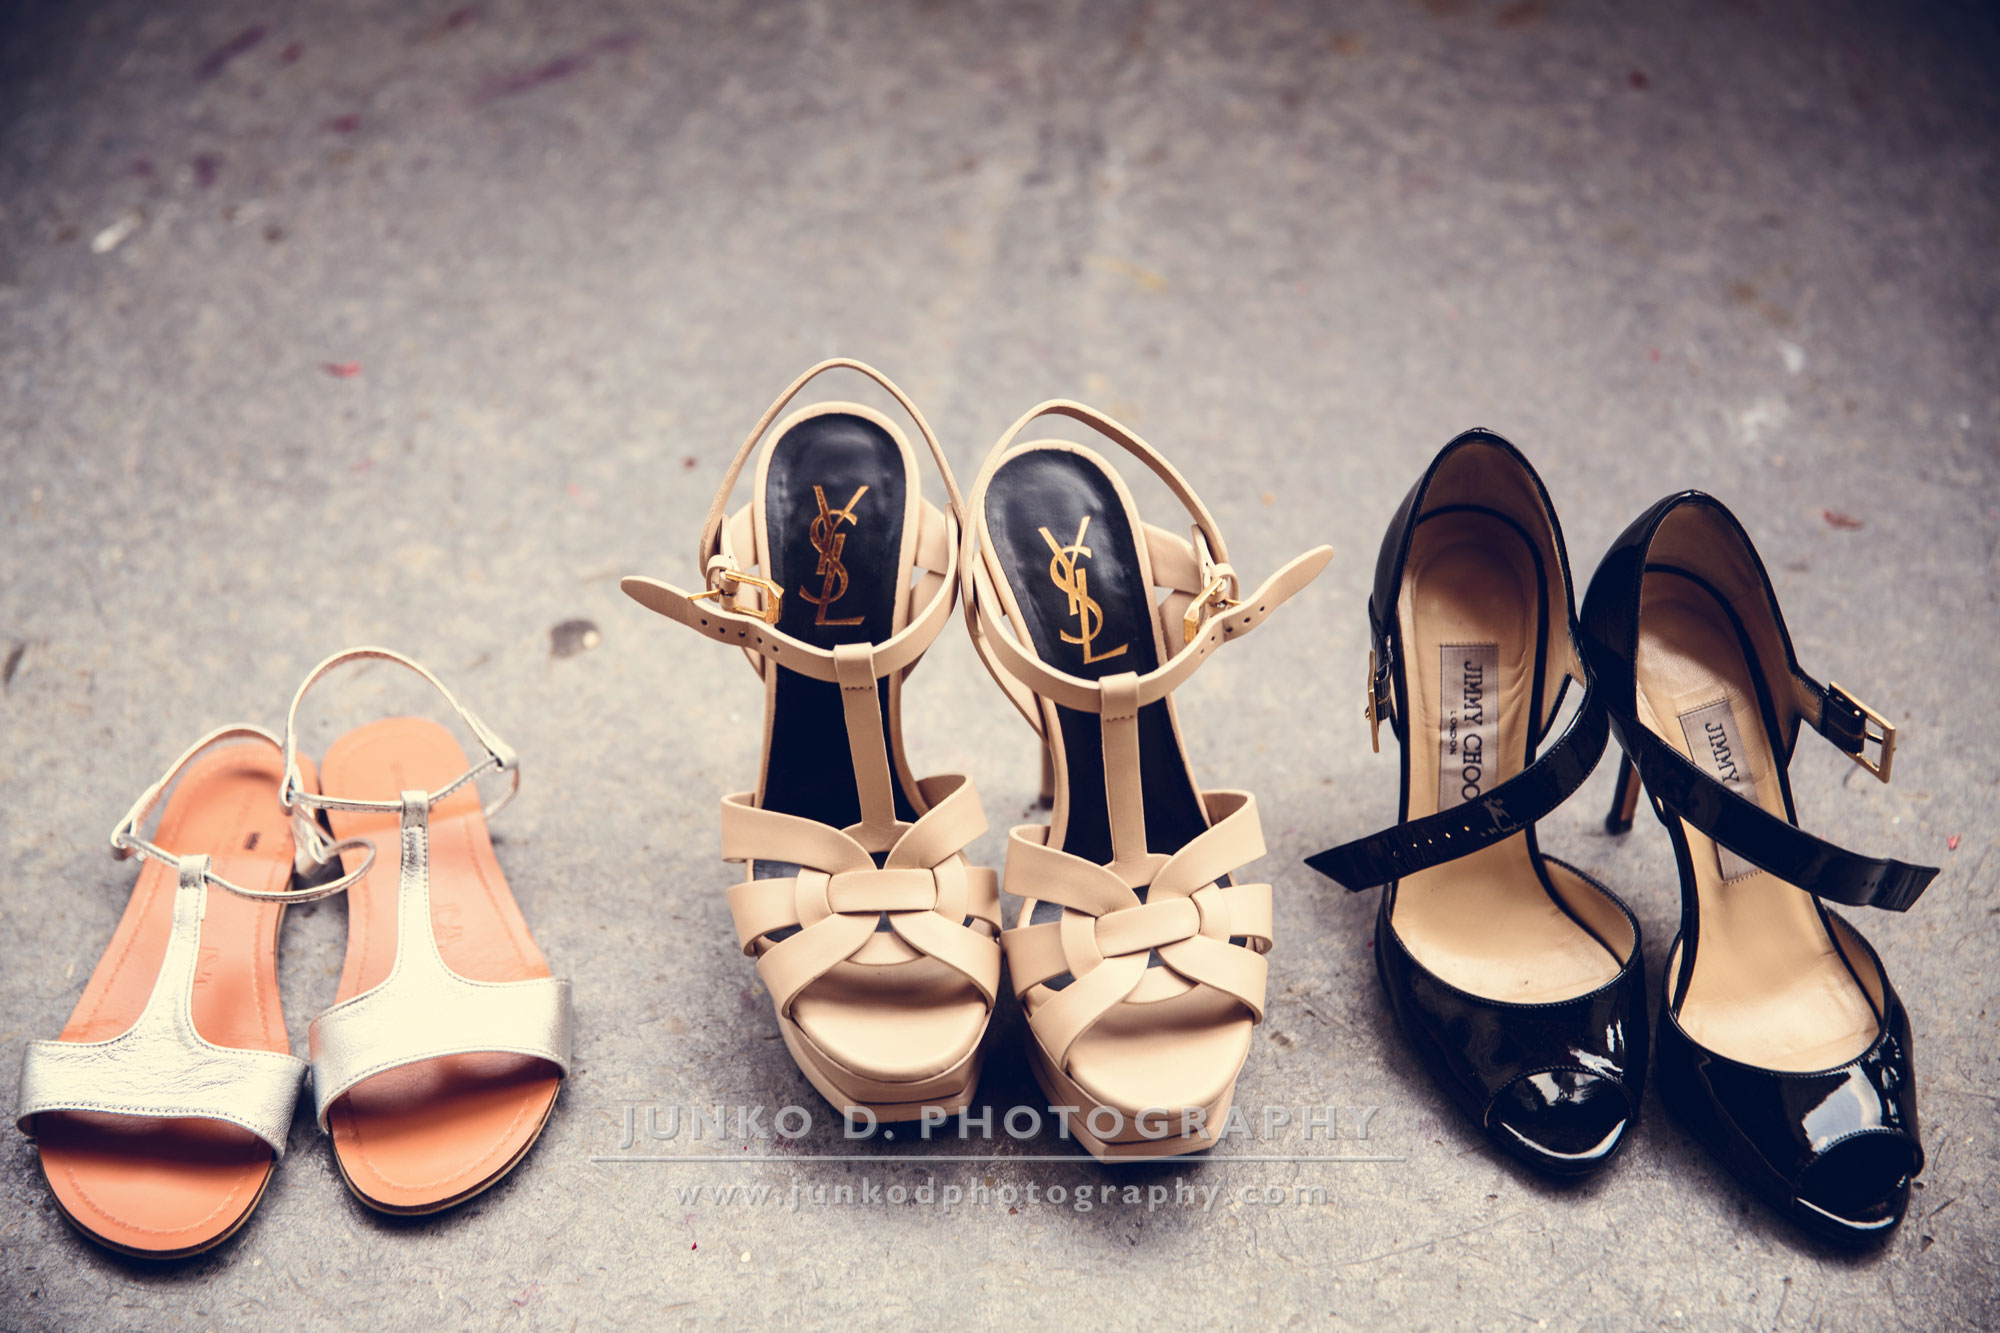 3 designer shoes